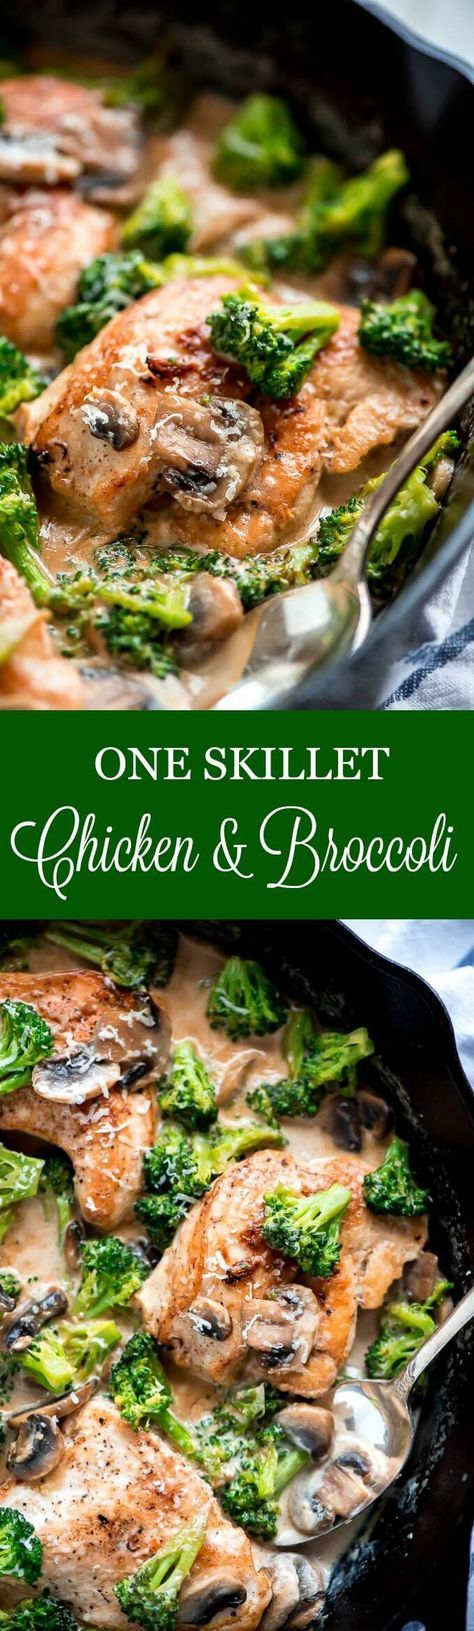 One Skillet Chicken and Broccoli is a super quick, creamy, delicious dinner that comes together in just 20 minutes and even faster to clean up. #easydinner #chickendinner #chickenrecipes #oneskilletchicken